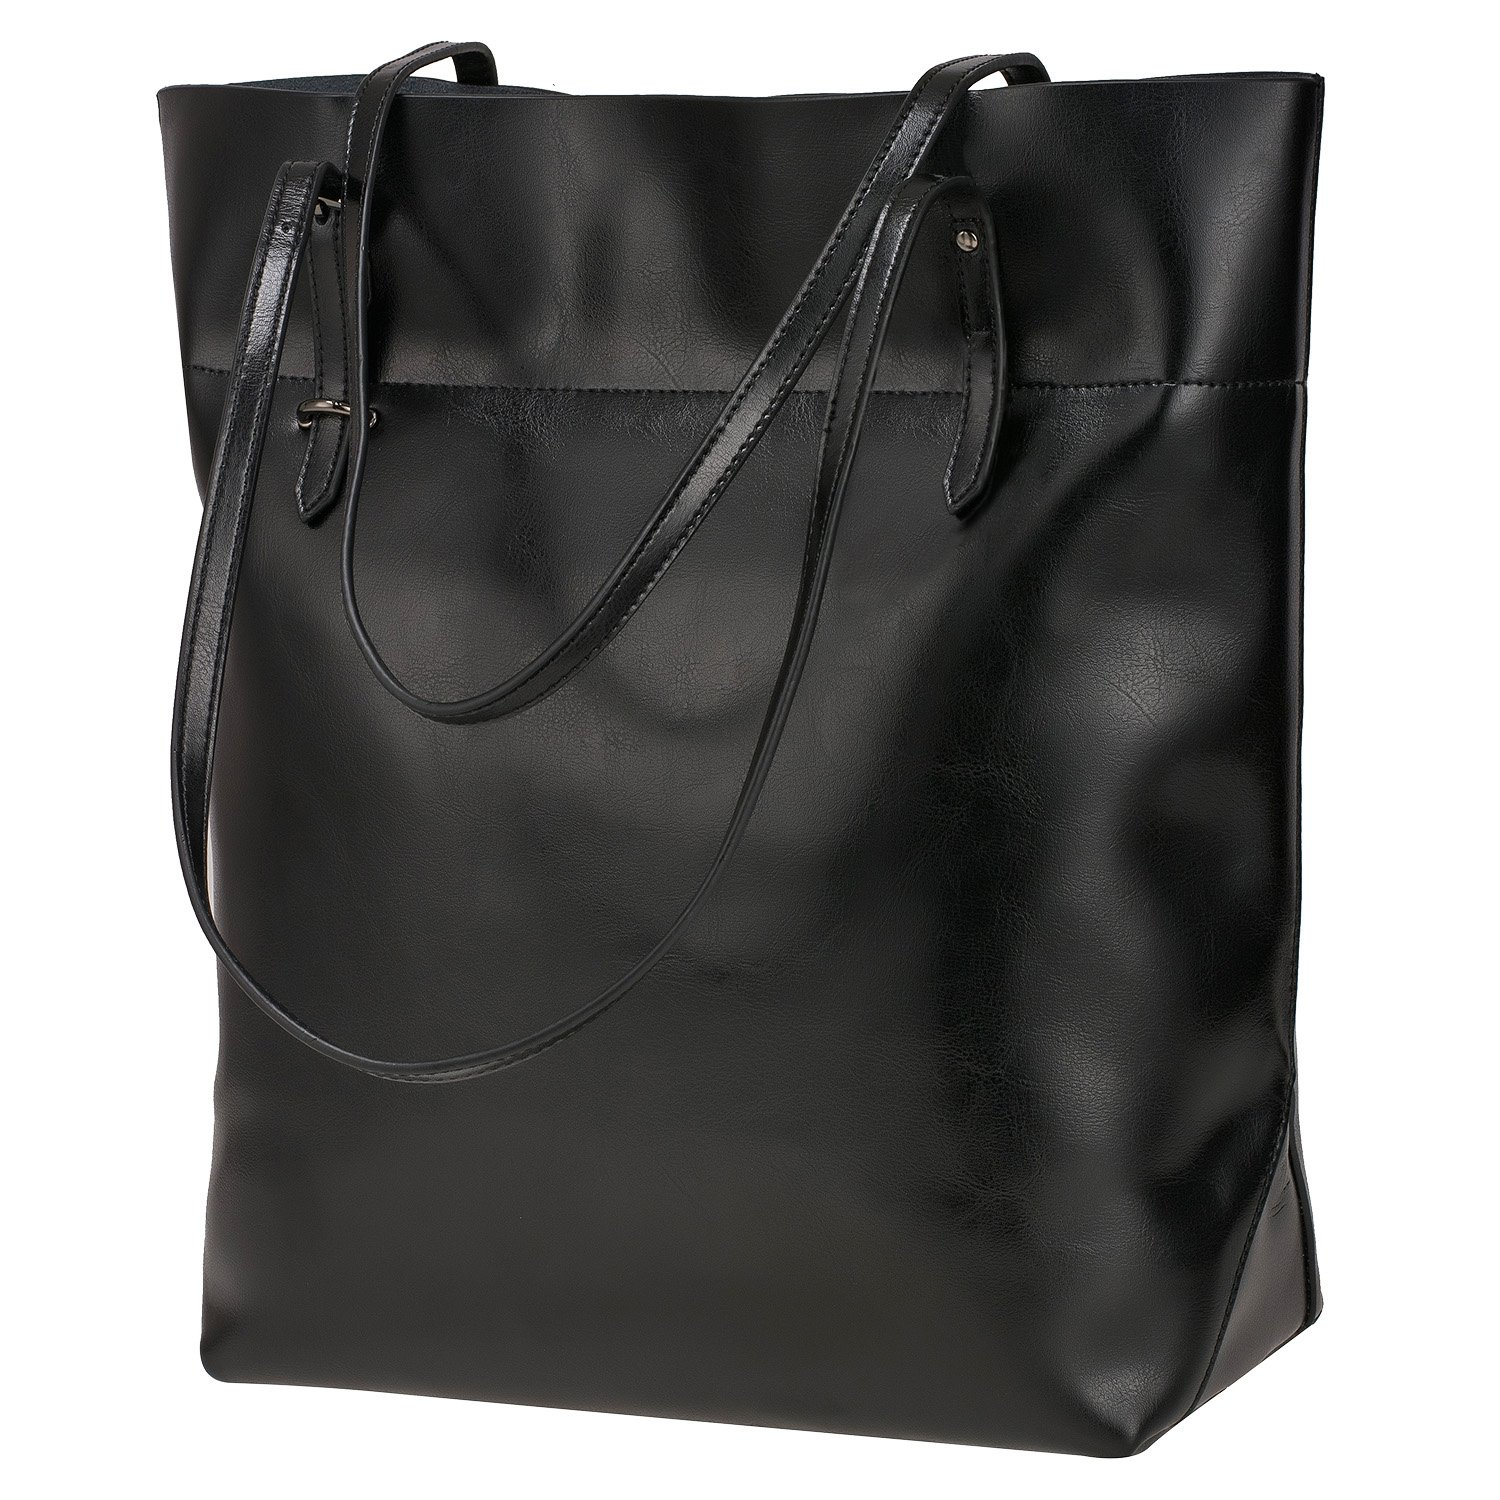 a9ef7519c8e S-ZONE Vintage Genuine Leather Tote Shoulder Bag Handbag Big Large Capacity